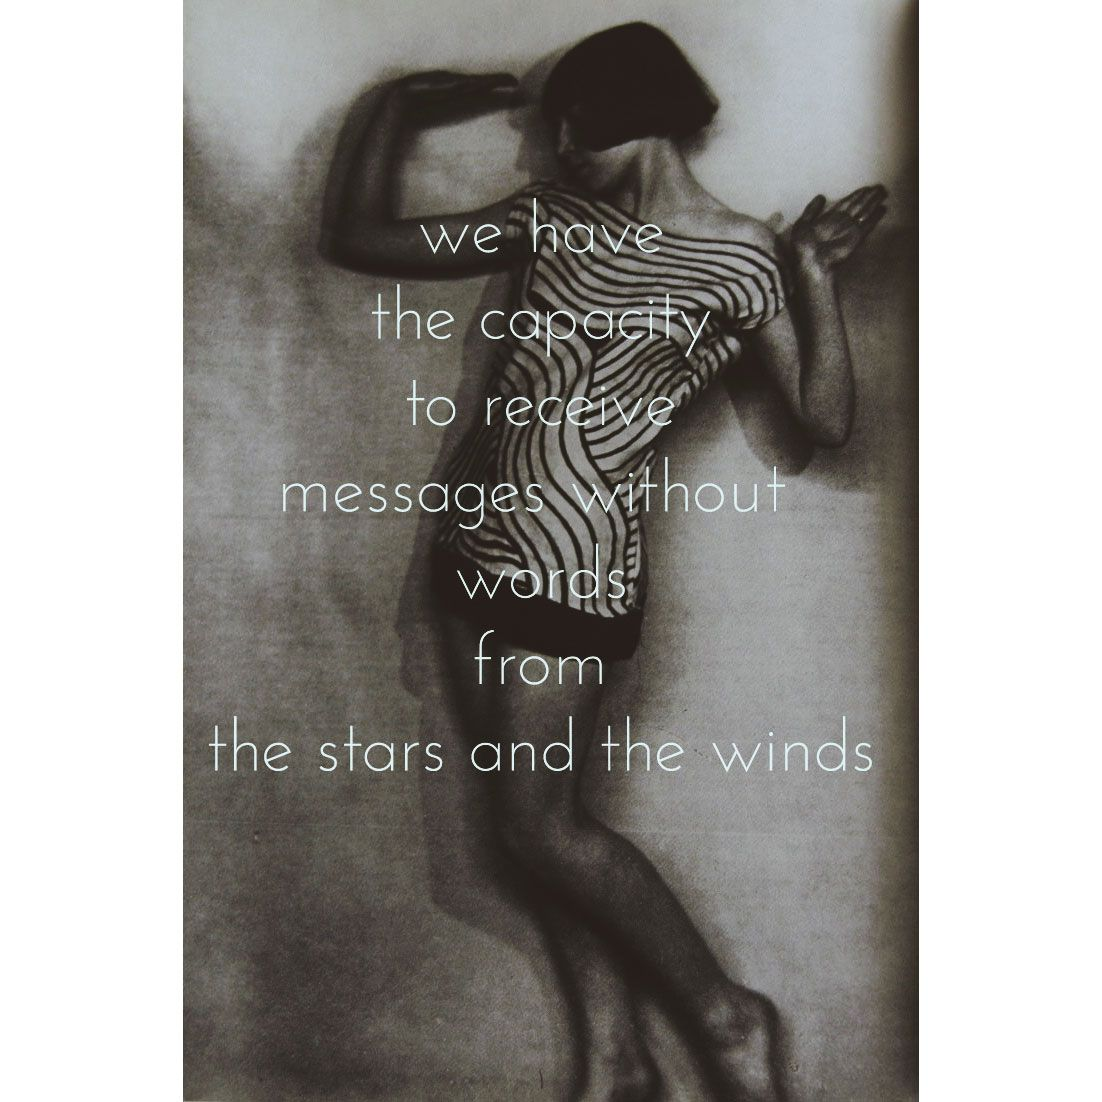 We have the capacity to receive messages without words from the stars and the winds. #undertheroot